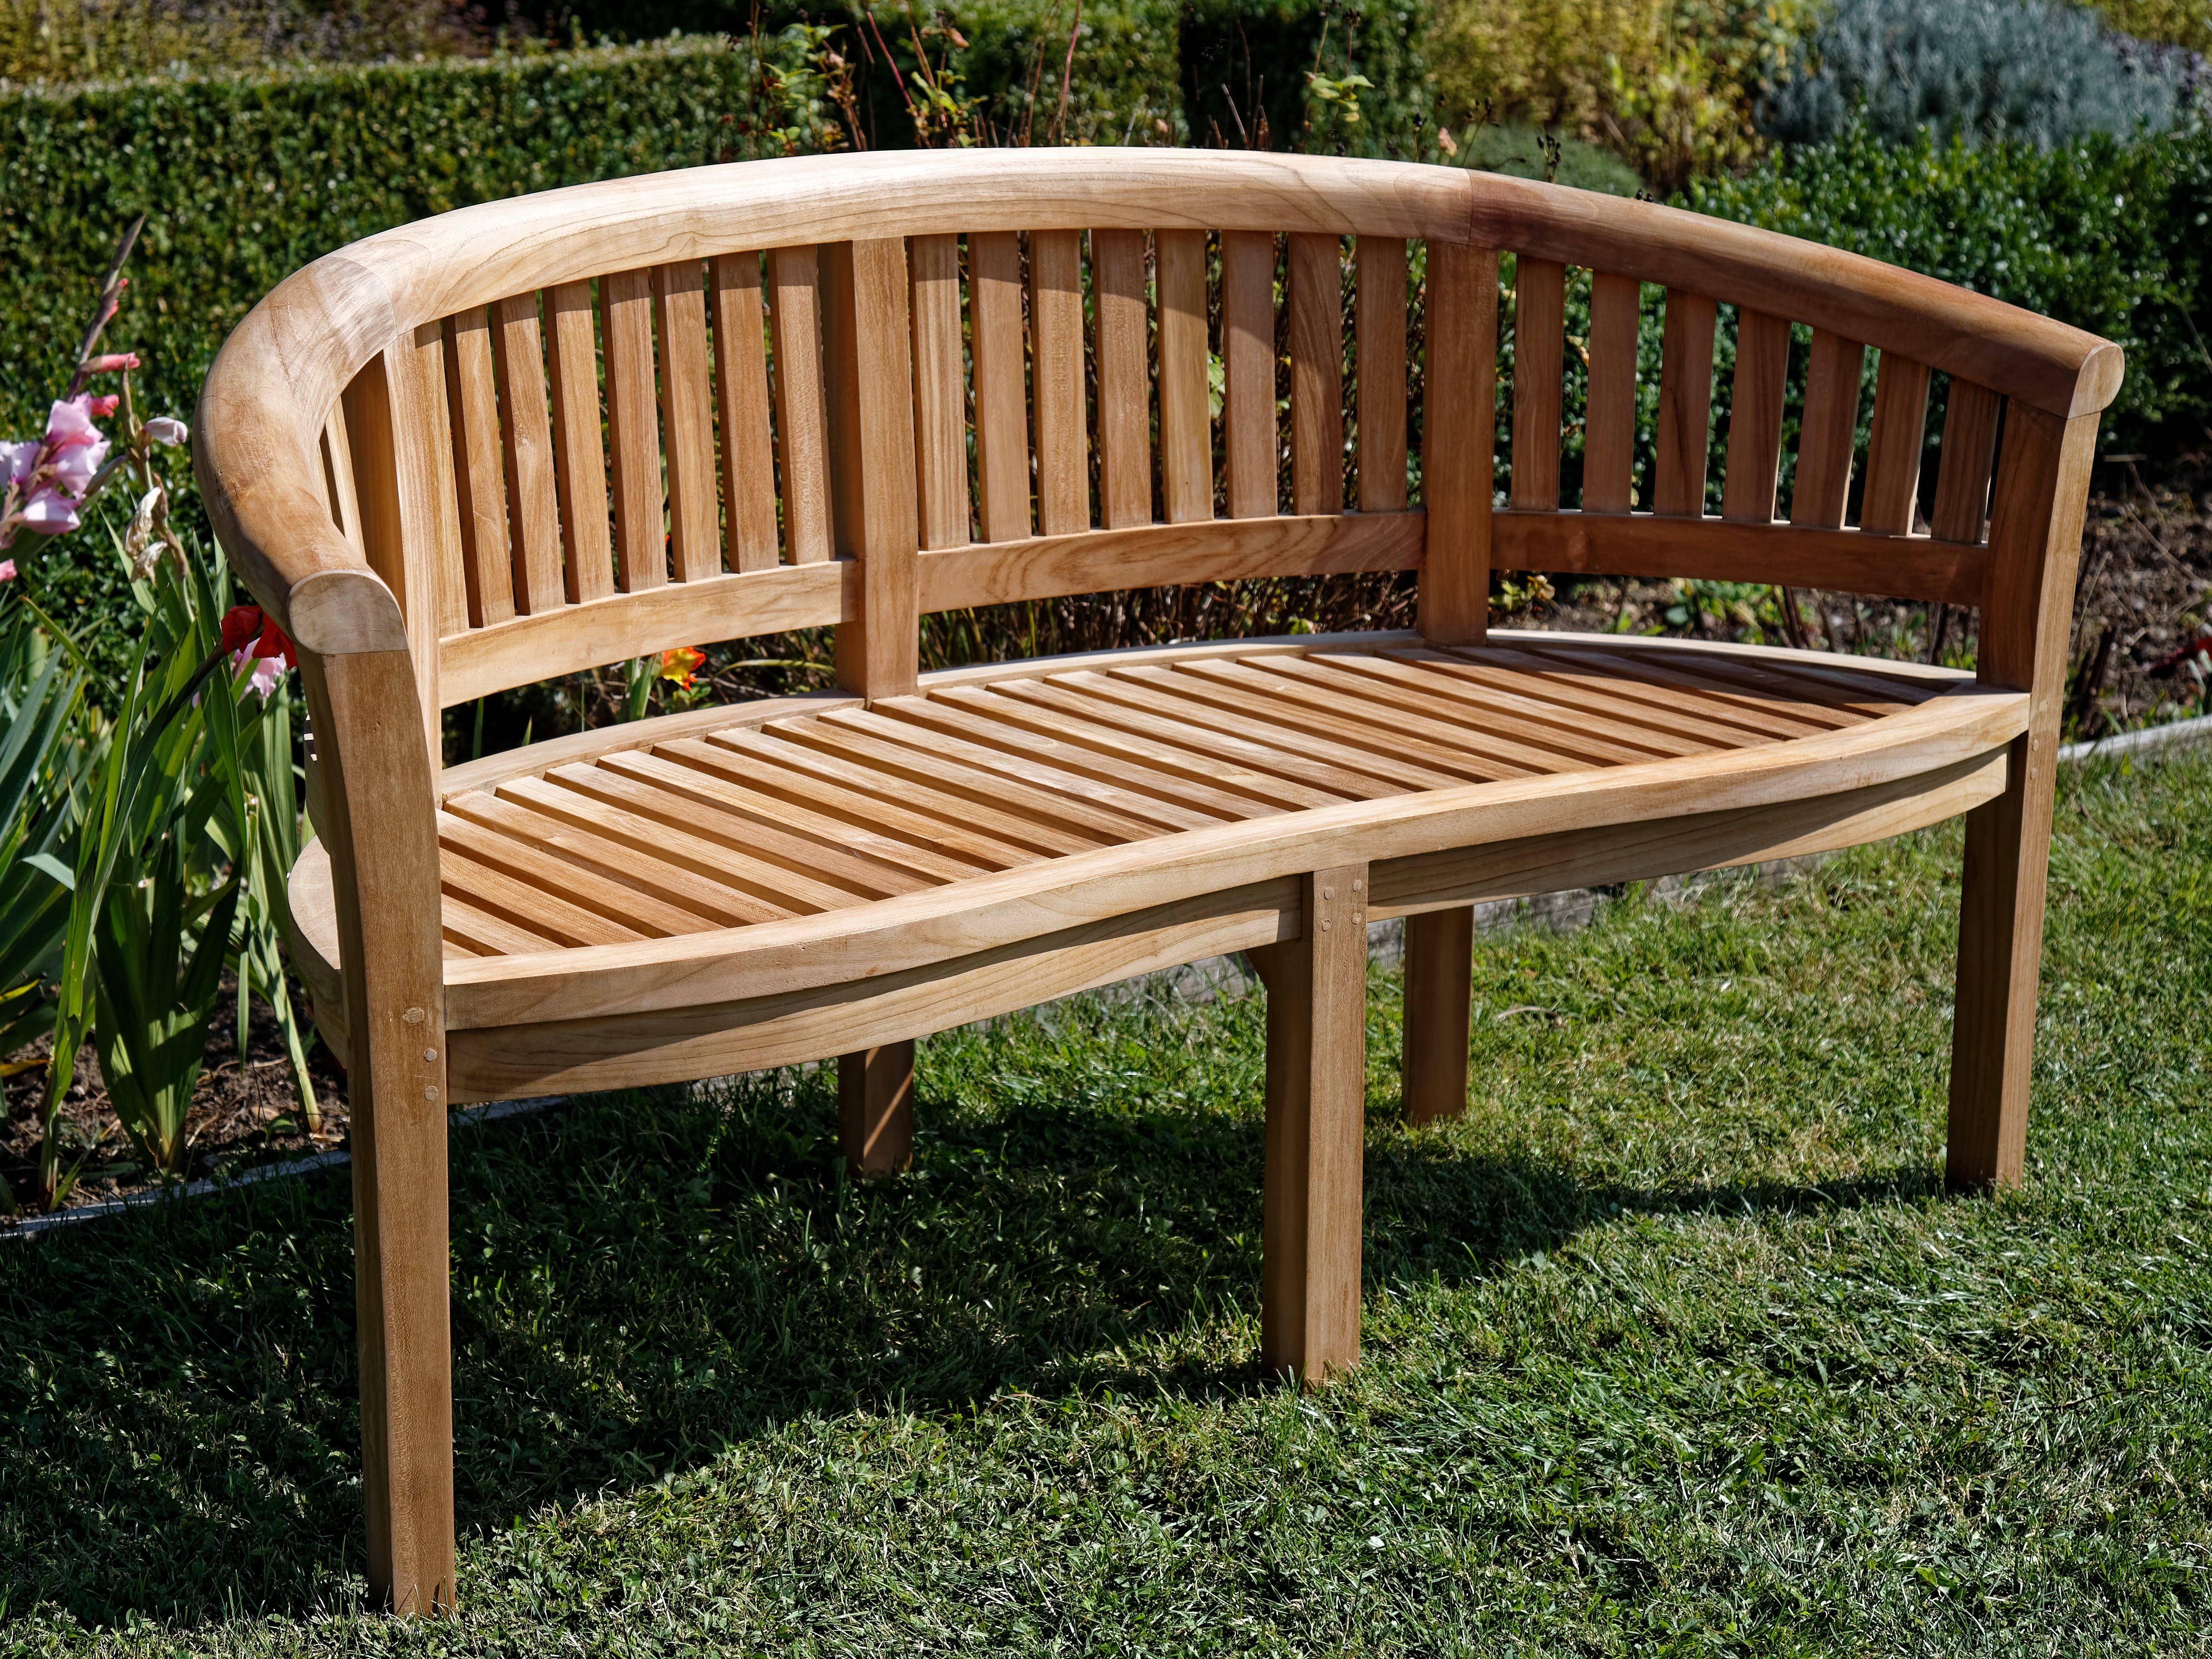 File Wooden Bench In Copped Hall Kitchen Garden Epping Essex England Jpg Wikimedia Commons